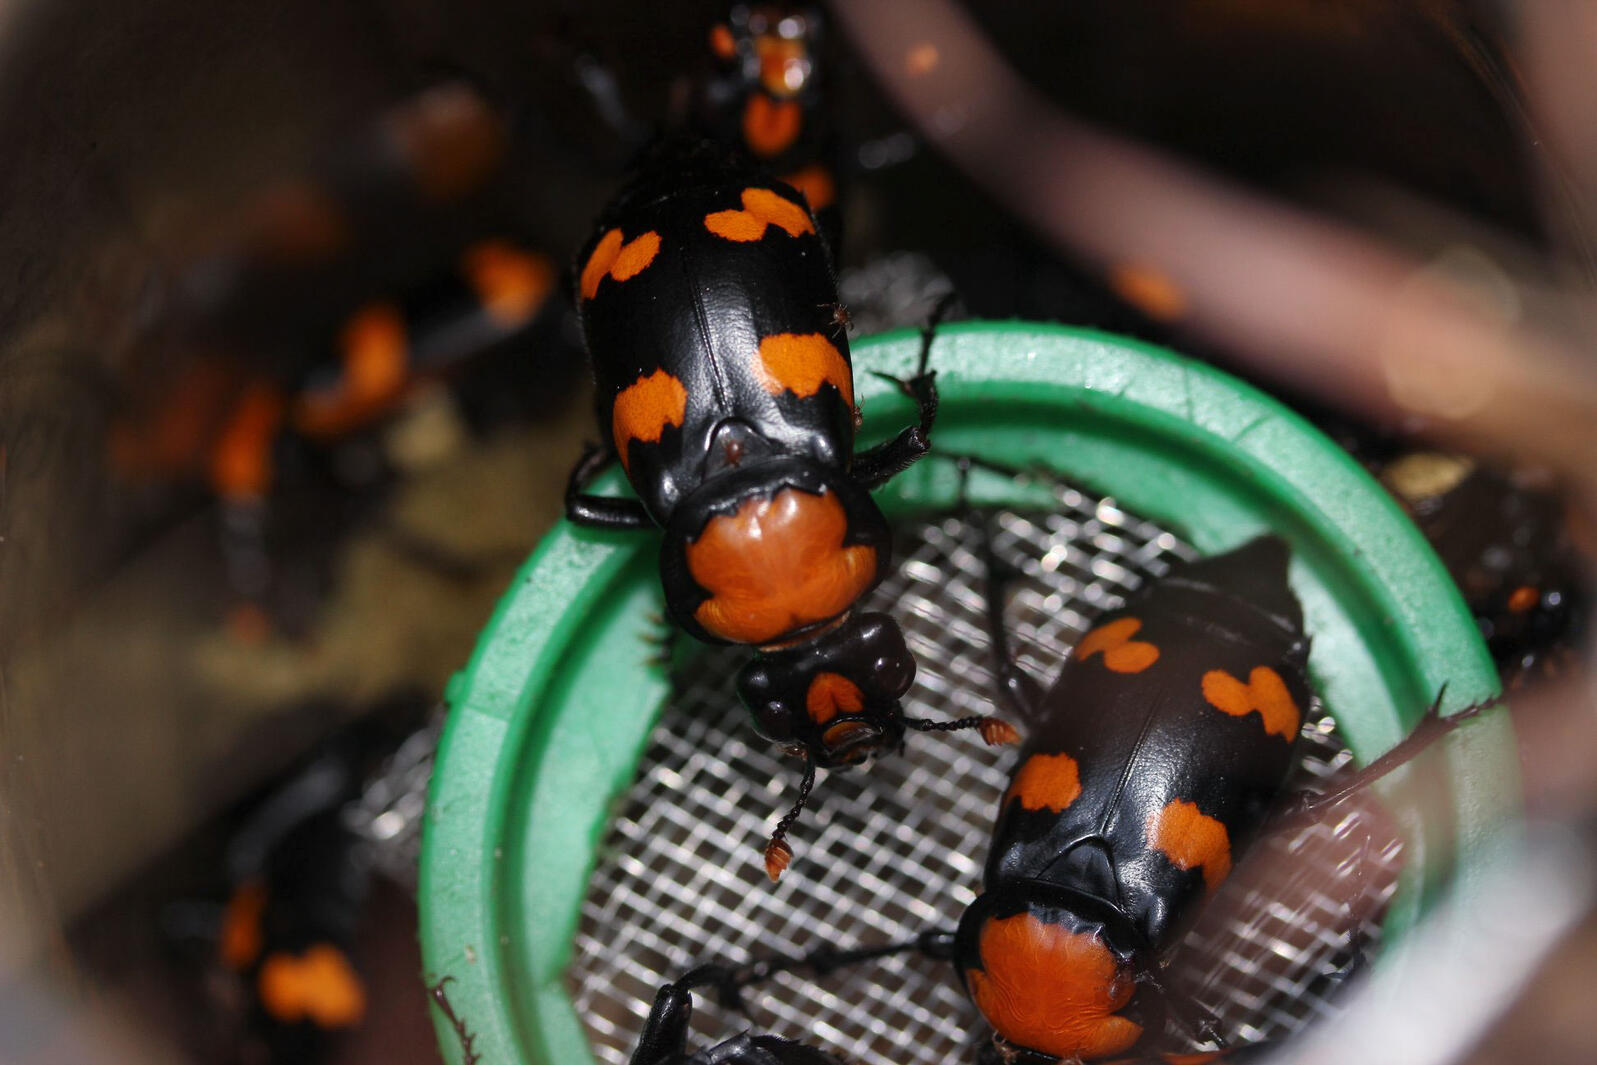 American burying beetles. Courtesy of Roger Williams Park Zoo